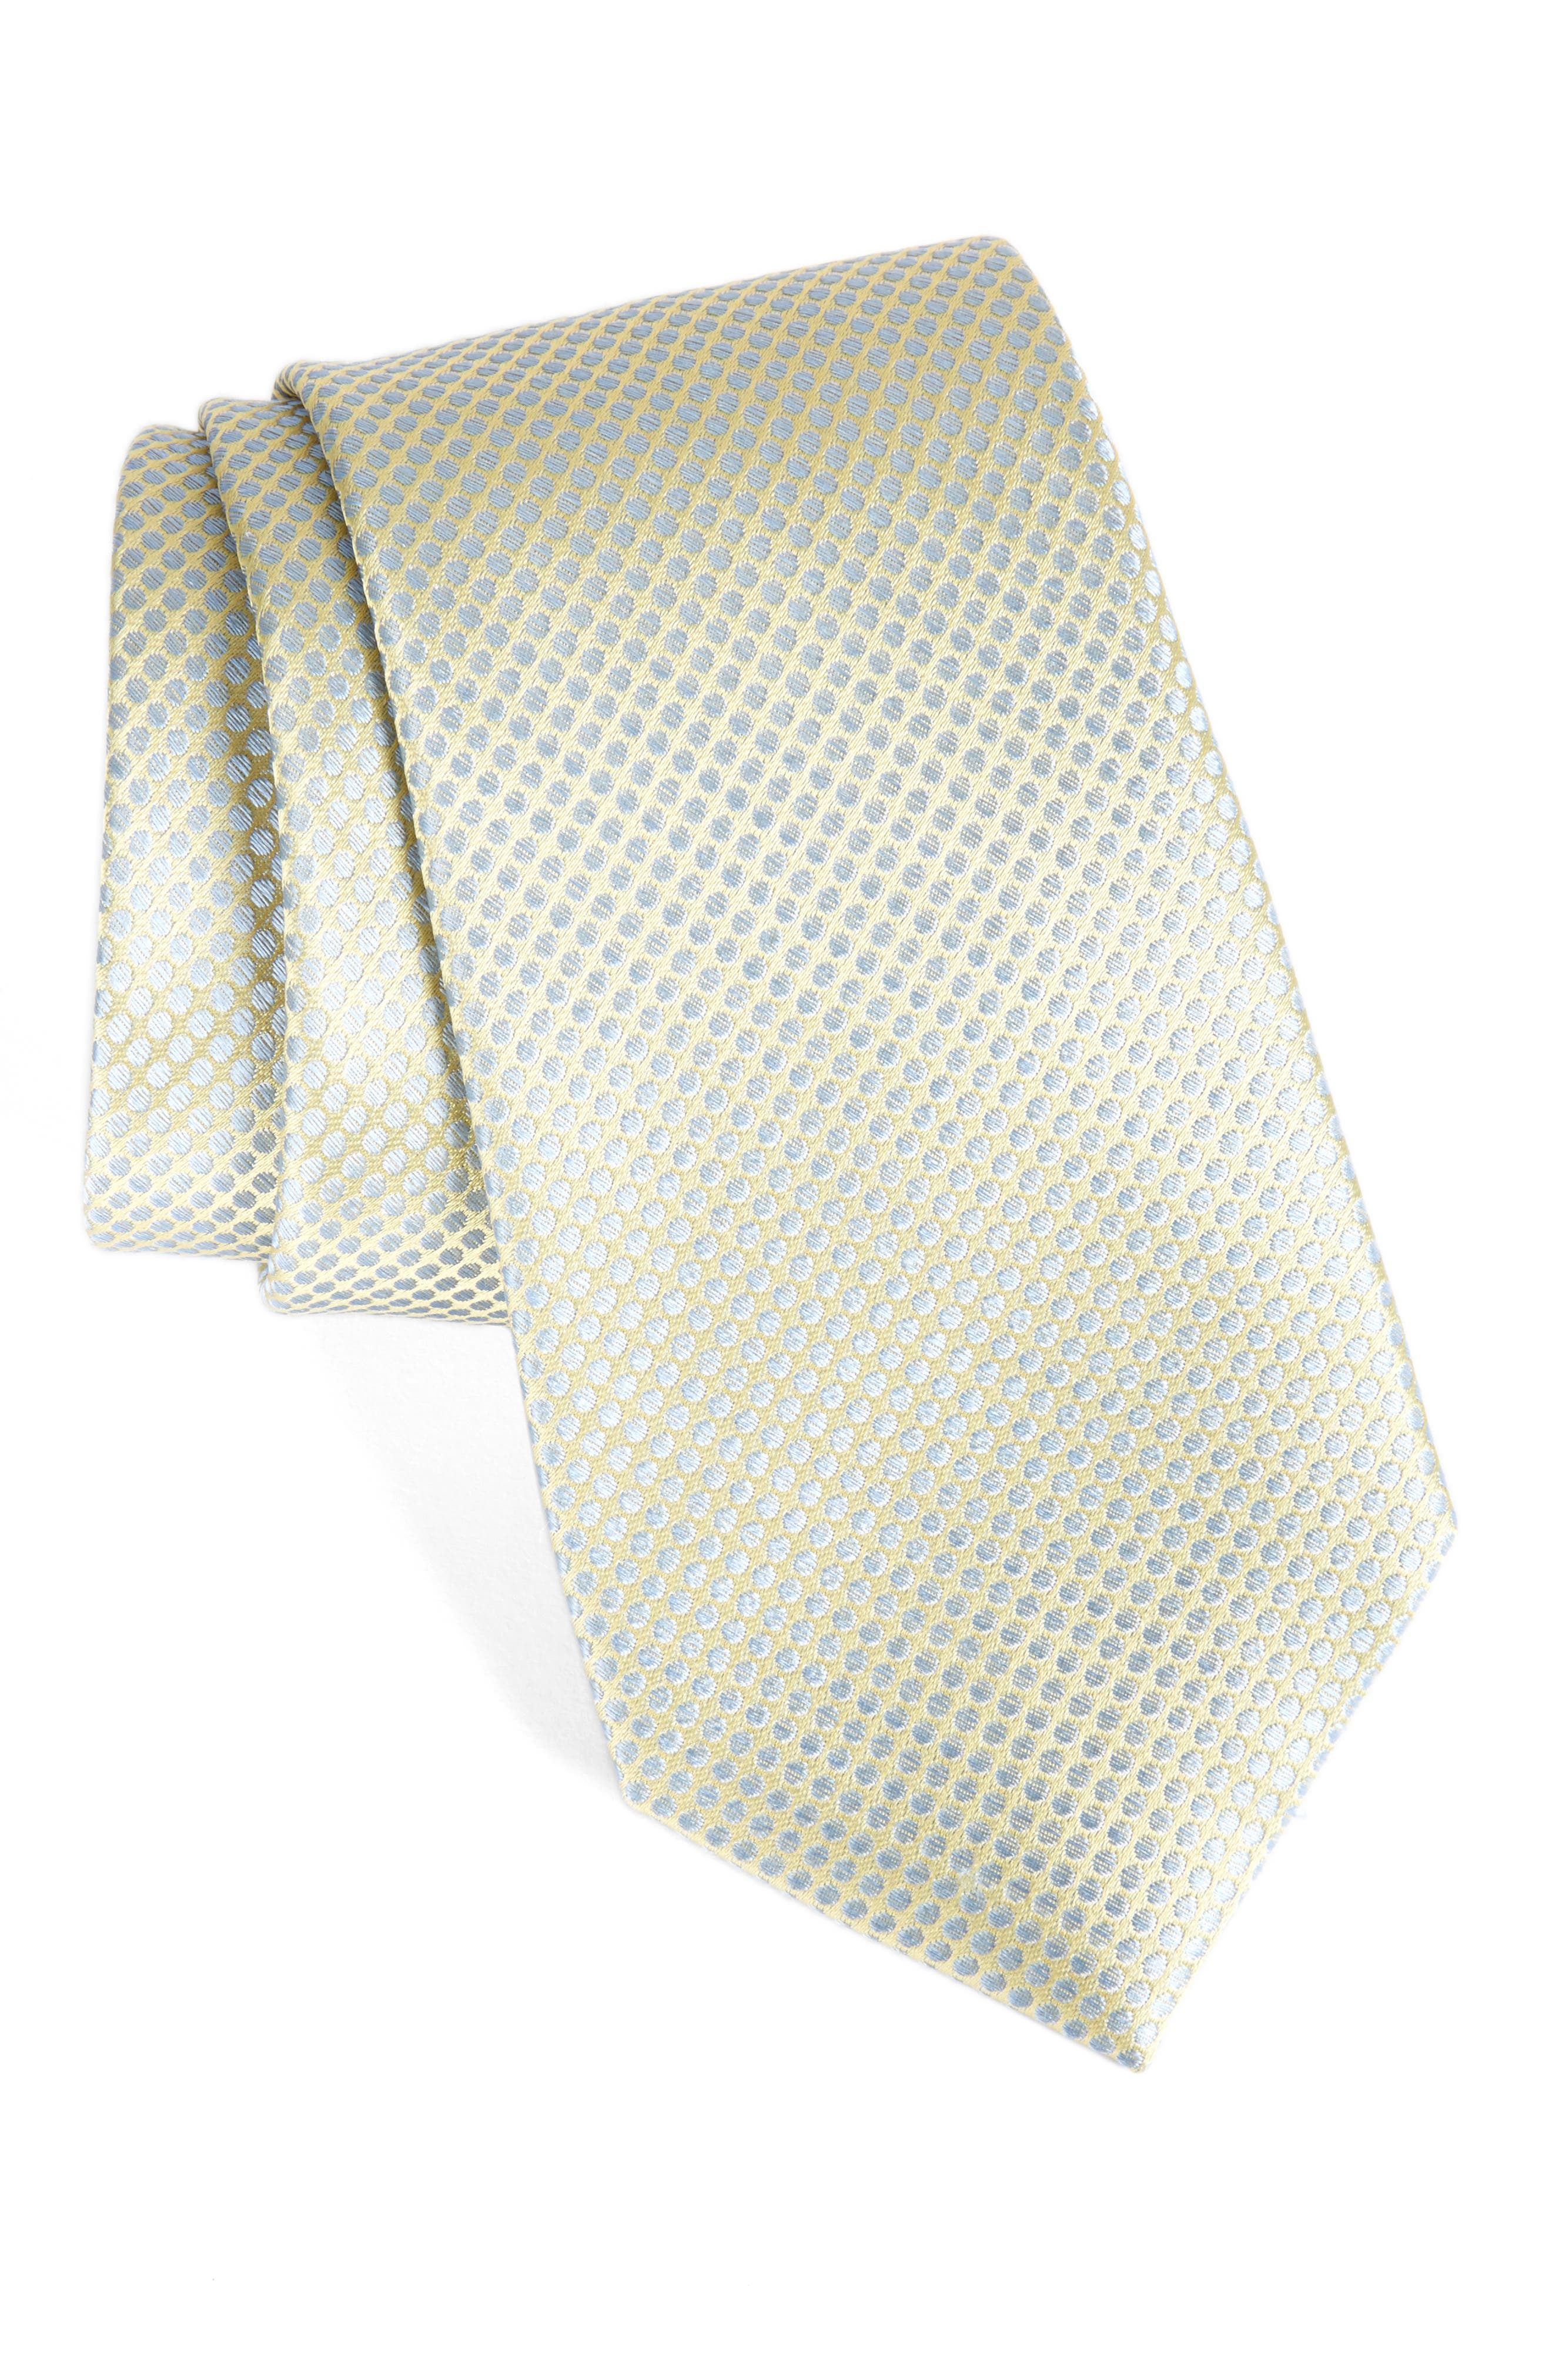 Saturated Dot Silk Tie,                         Main,                         color, Yellow